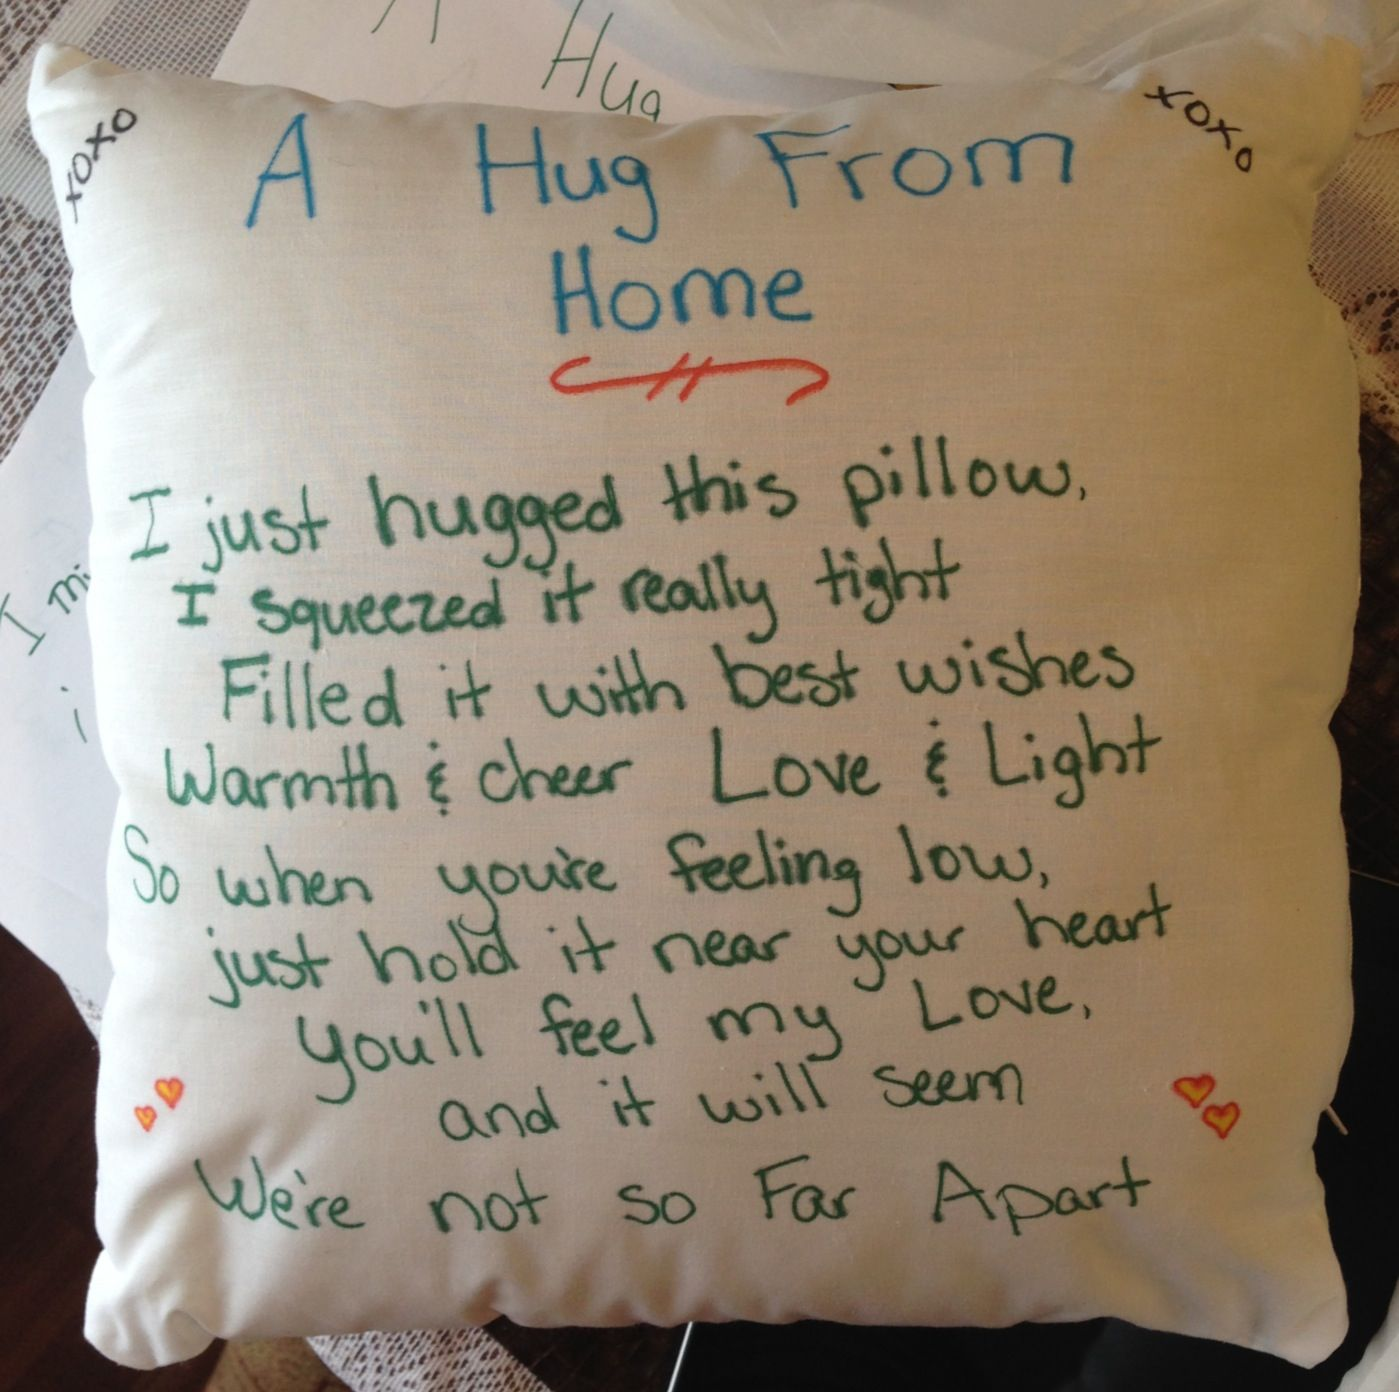 Lady Made This As A Deployment Pillow For Her Husband When He Shipped Out It Would Work Well Children That Are Going To Stay The Night W Family Or